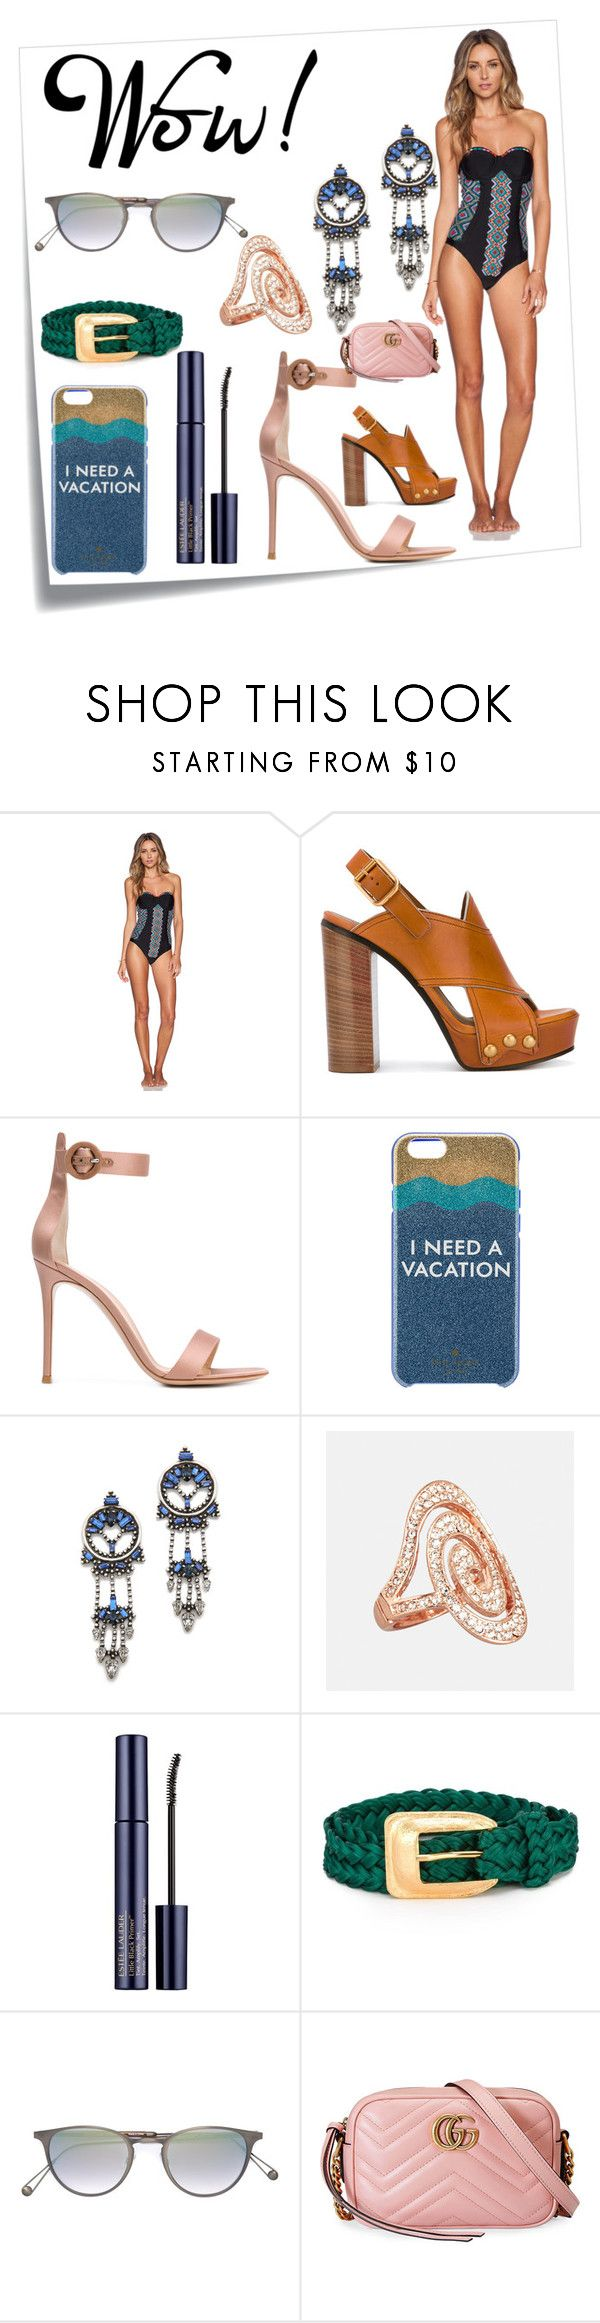 """Beach Riot The Cleopatra Swimsuit"" by ramakumari ❤ liked on Polyvore featuring Post-It, Beach Riot, Gianvito Rossi, Kate Spade, DANNIJO, Avenue, Yves Saint Laurent, Garrett Leight and Gucci"